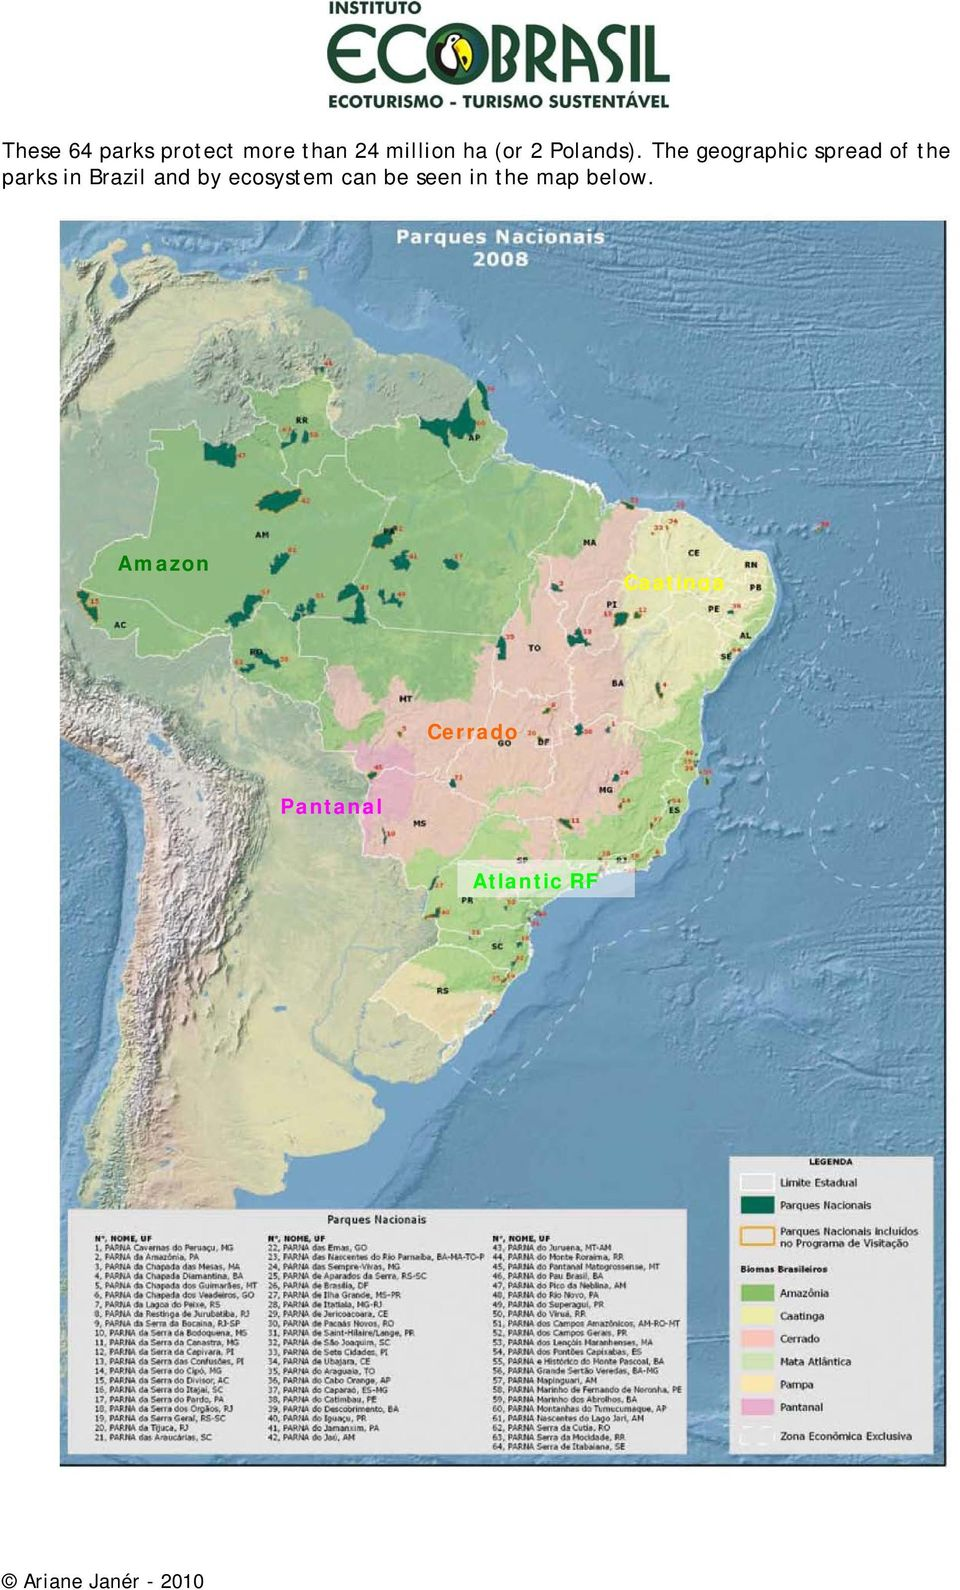 The geographic spread of the parks in Brazil and